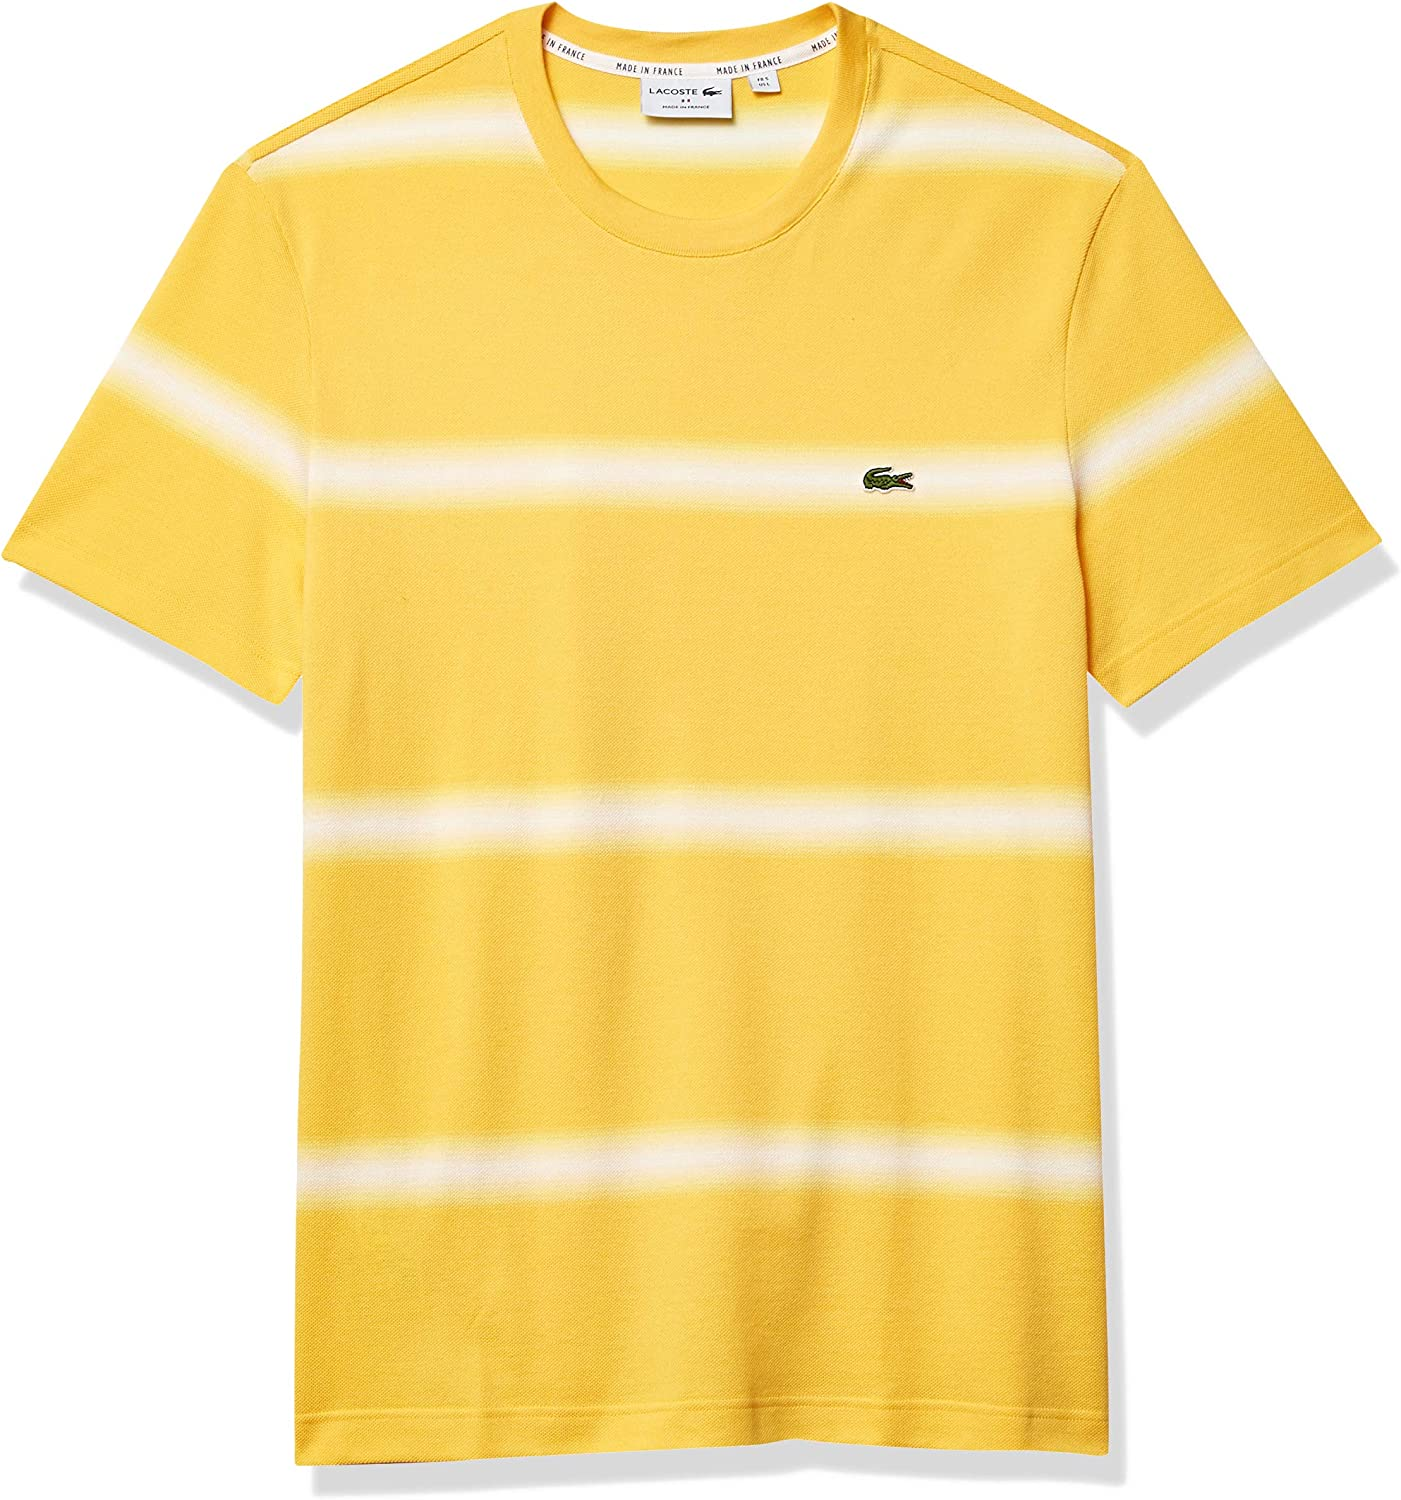 Lacoste Men's Short Sleeve Ombre Striped Fit Recommendation T-Shirt Colorado Springs Mall Regular